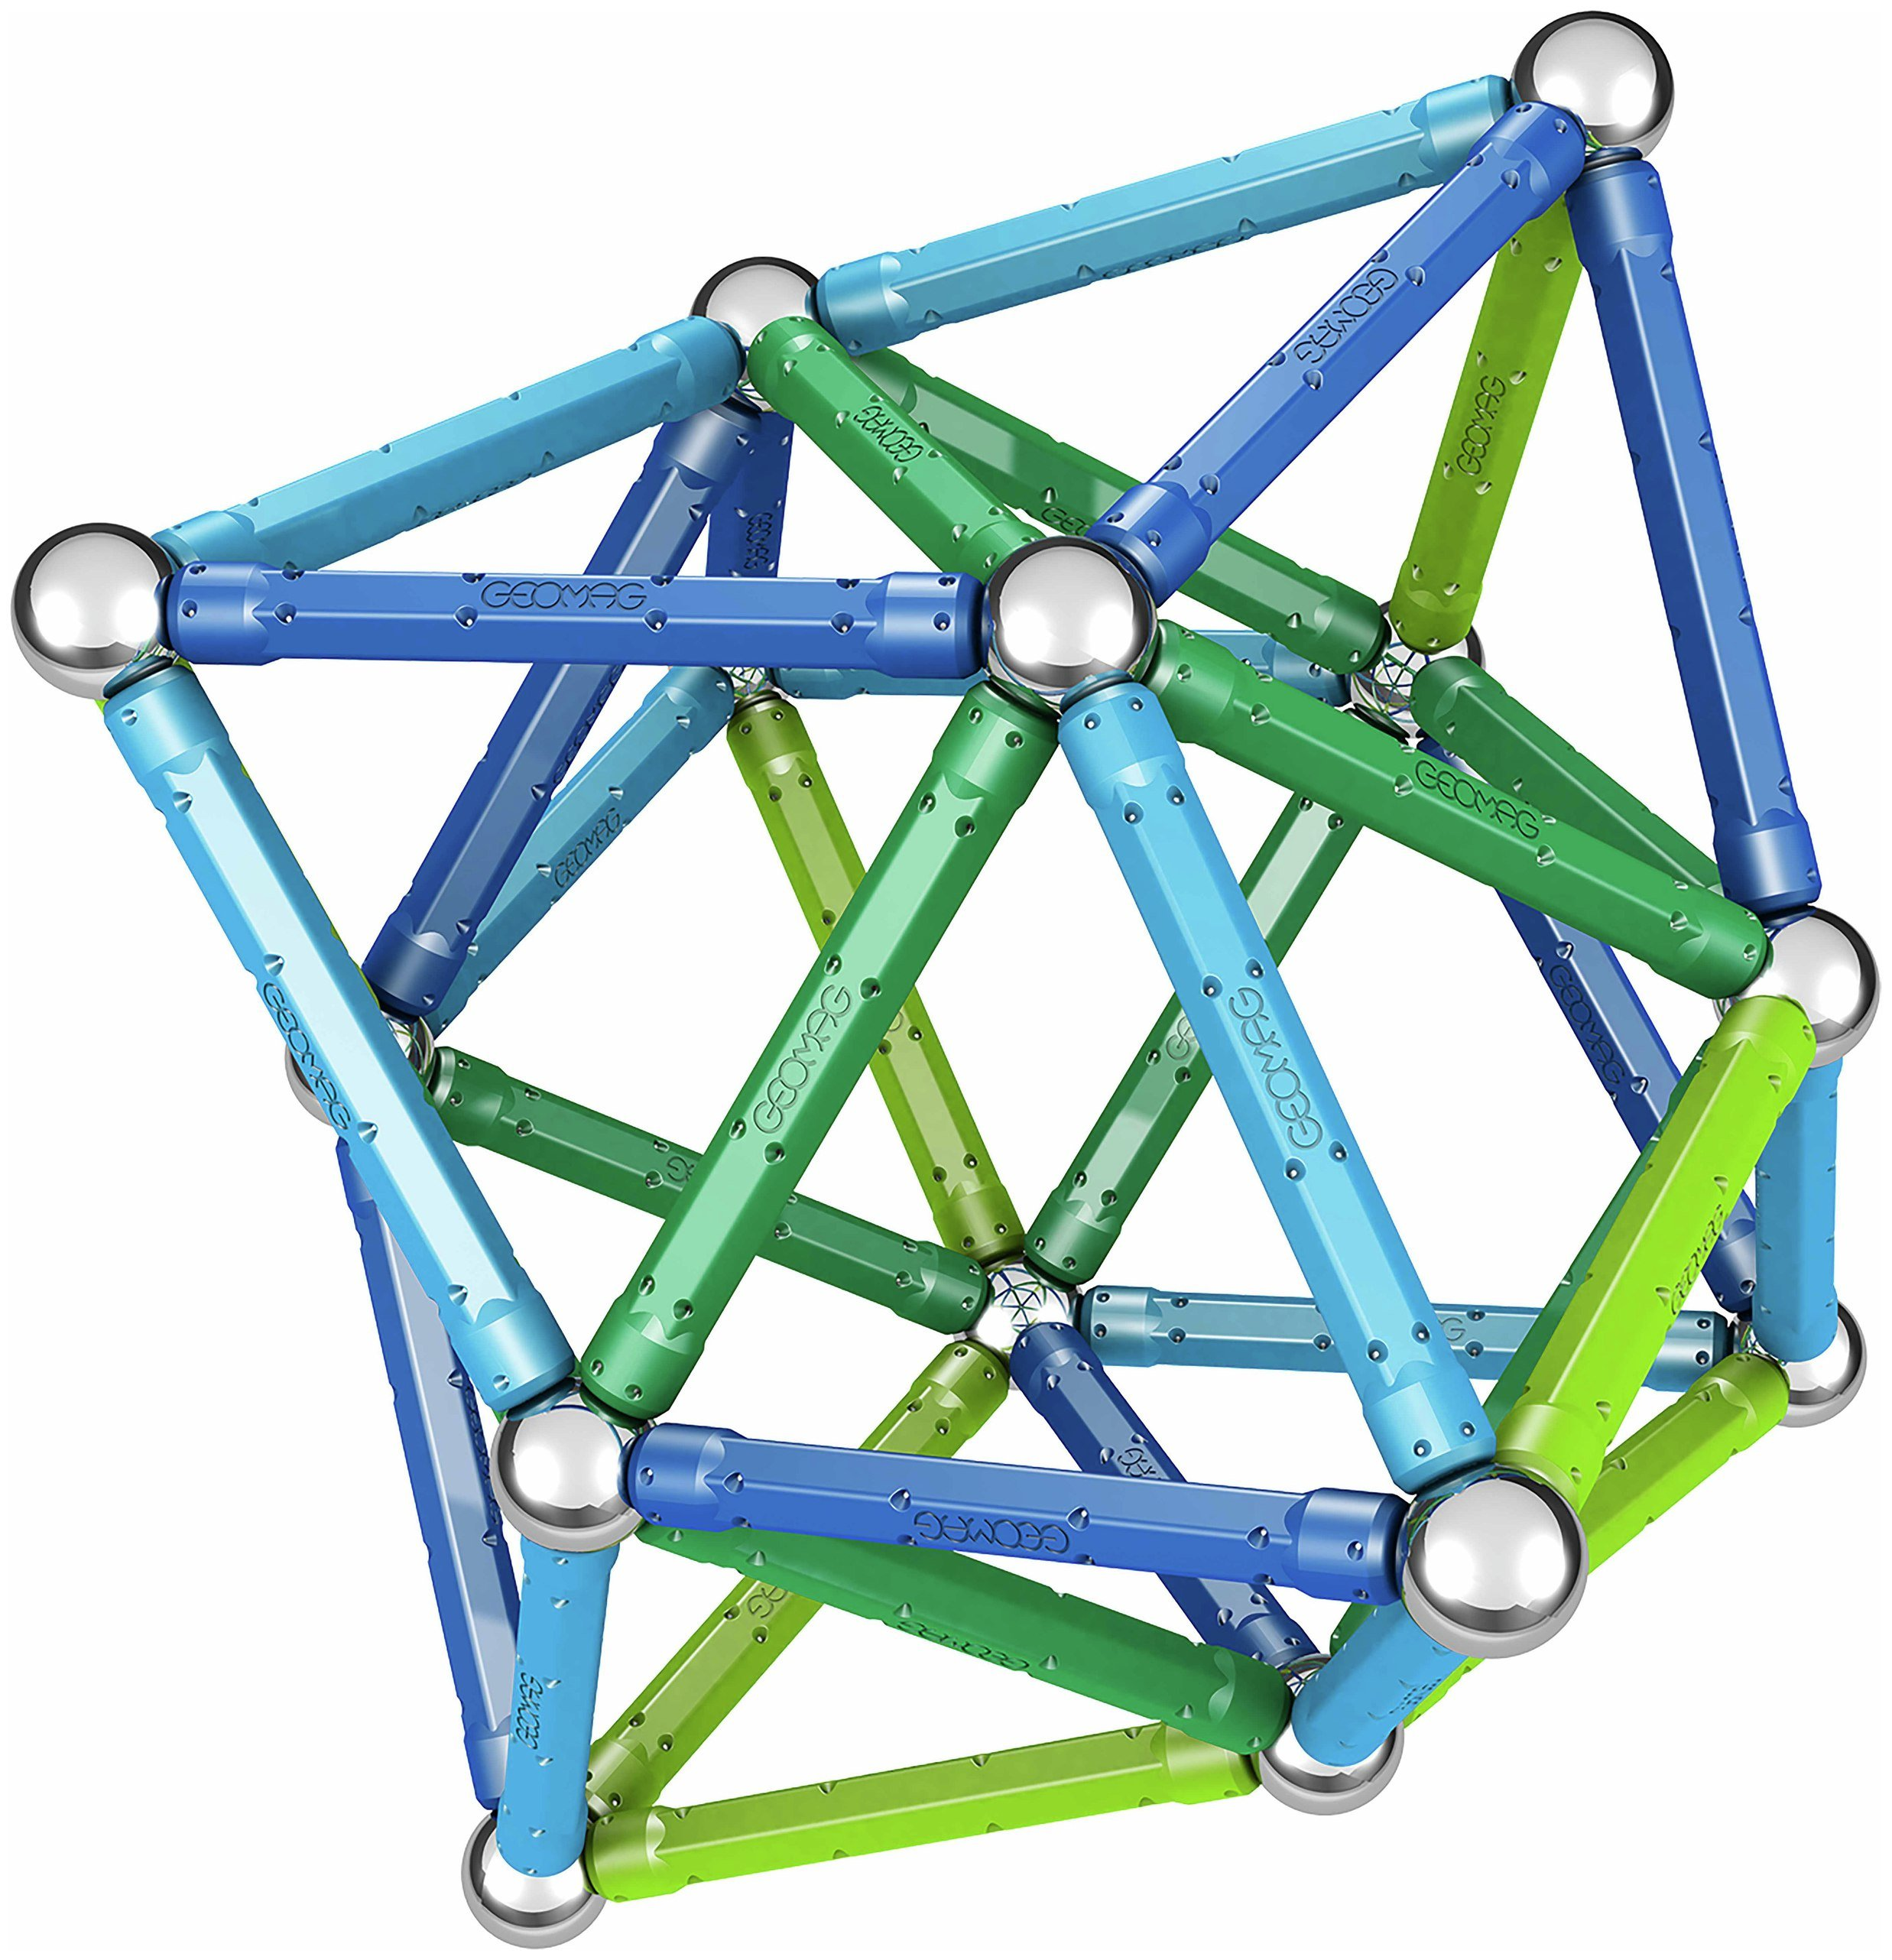 Geomag Colour 91 Magnetic Construction System.